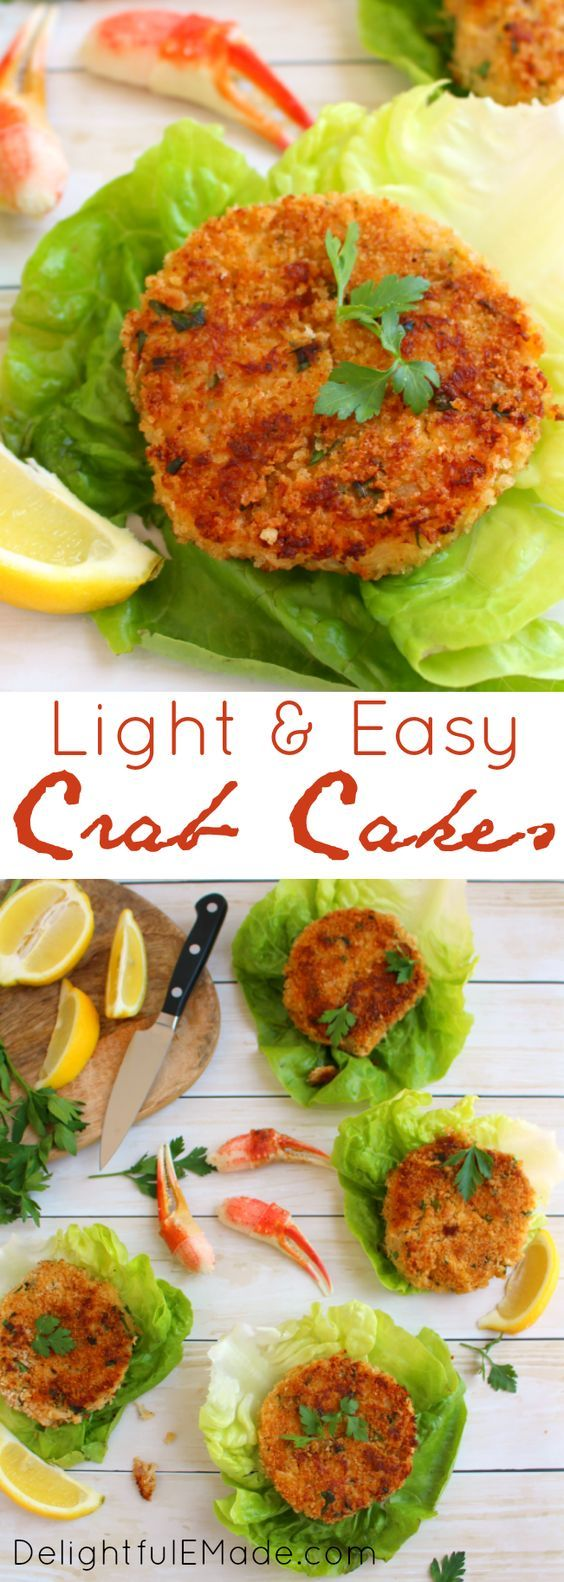 The best crab cakes you'll ever have! Filled with sweet, delicious Alaskan Snow Crab, and seasoned with fresh ingredients, these crab cakes will be a perfect dinner solution any night of the week! #WildAlaskaSeafood #CleverGirls